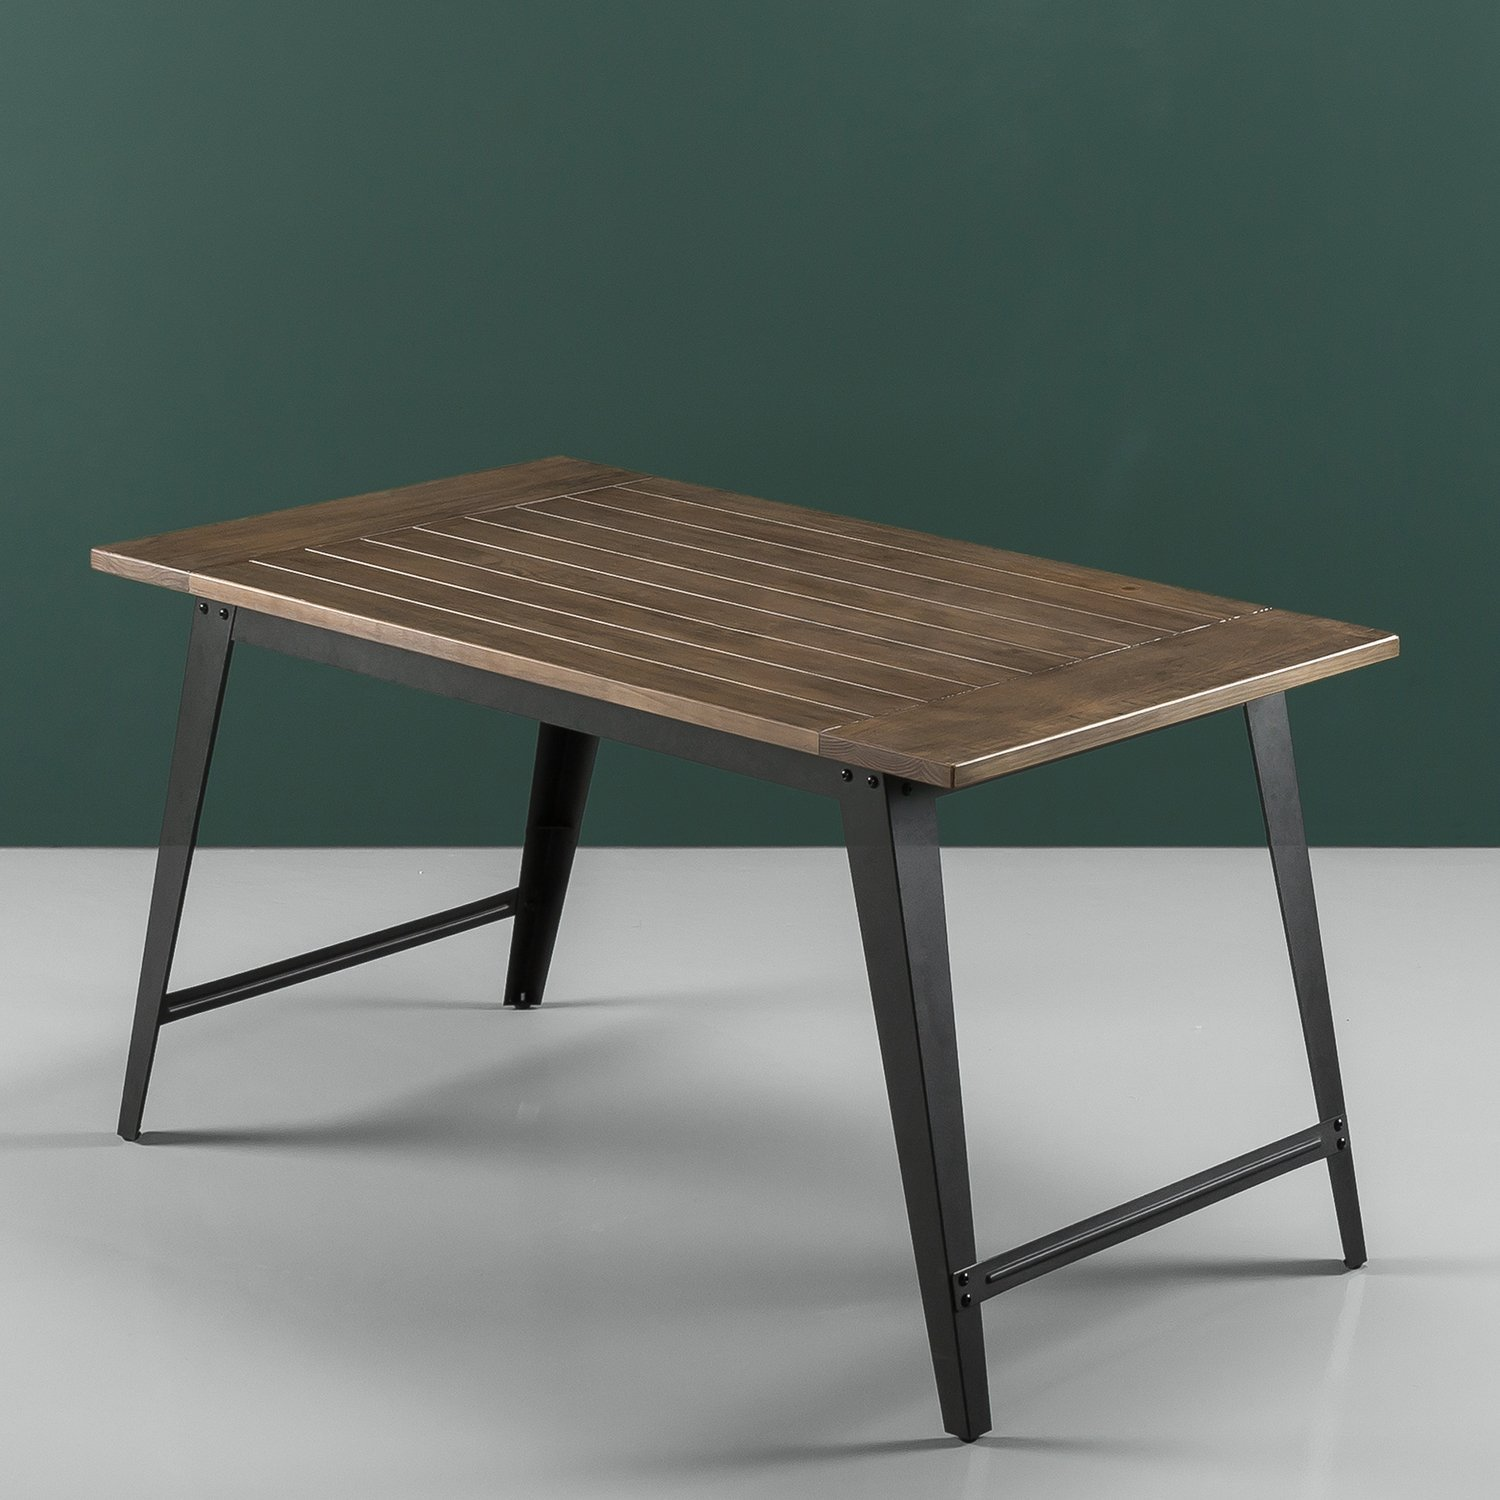 Zinus Wood and Metal Dining Table